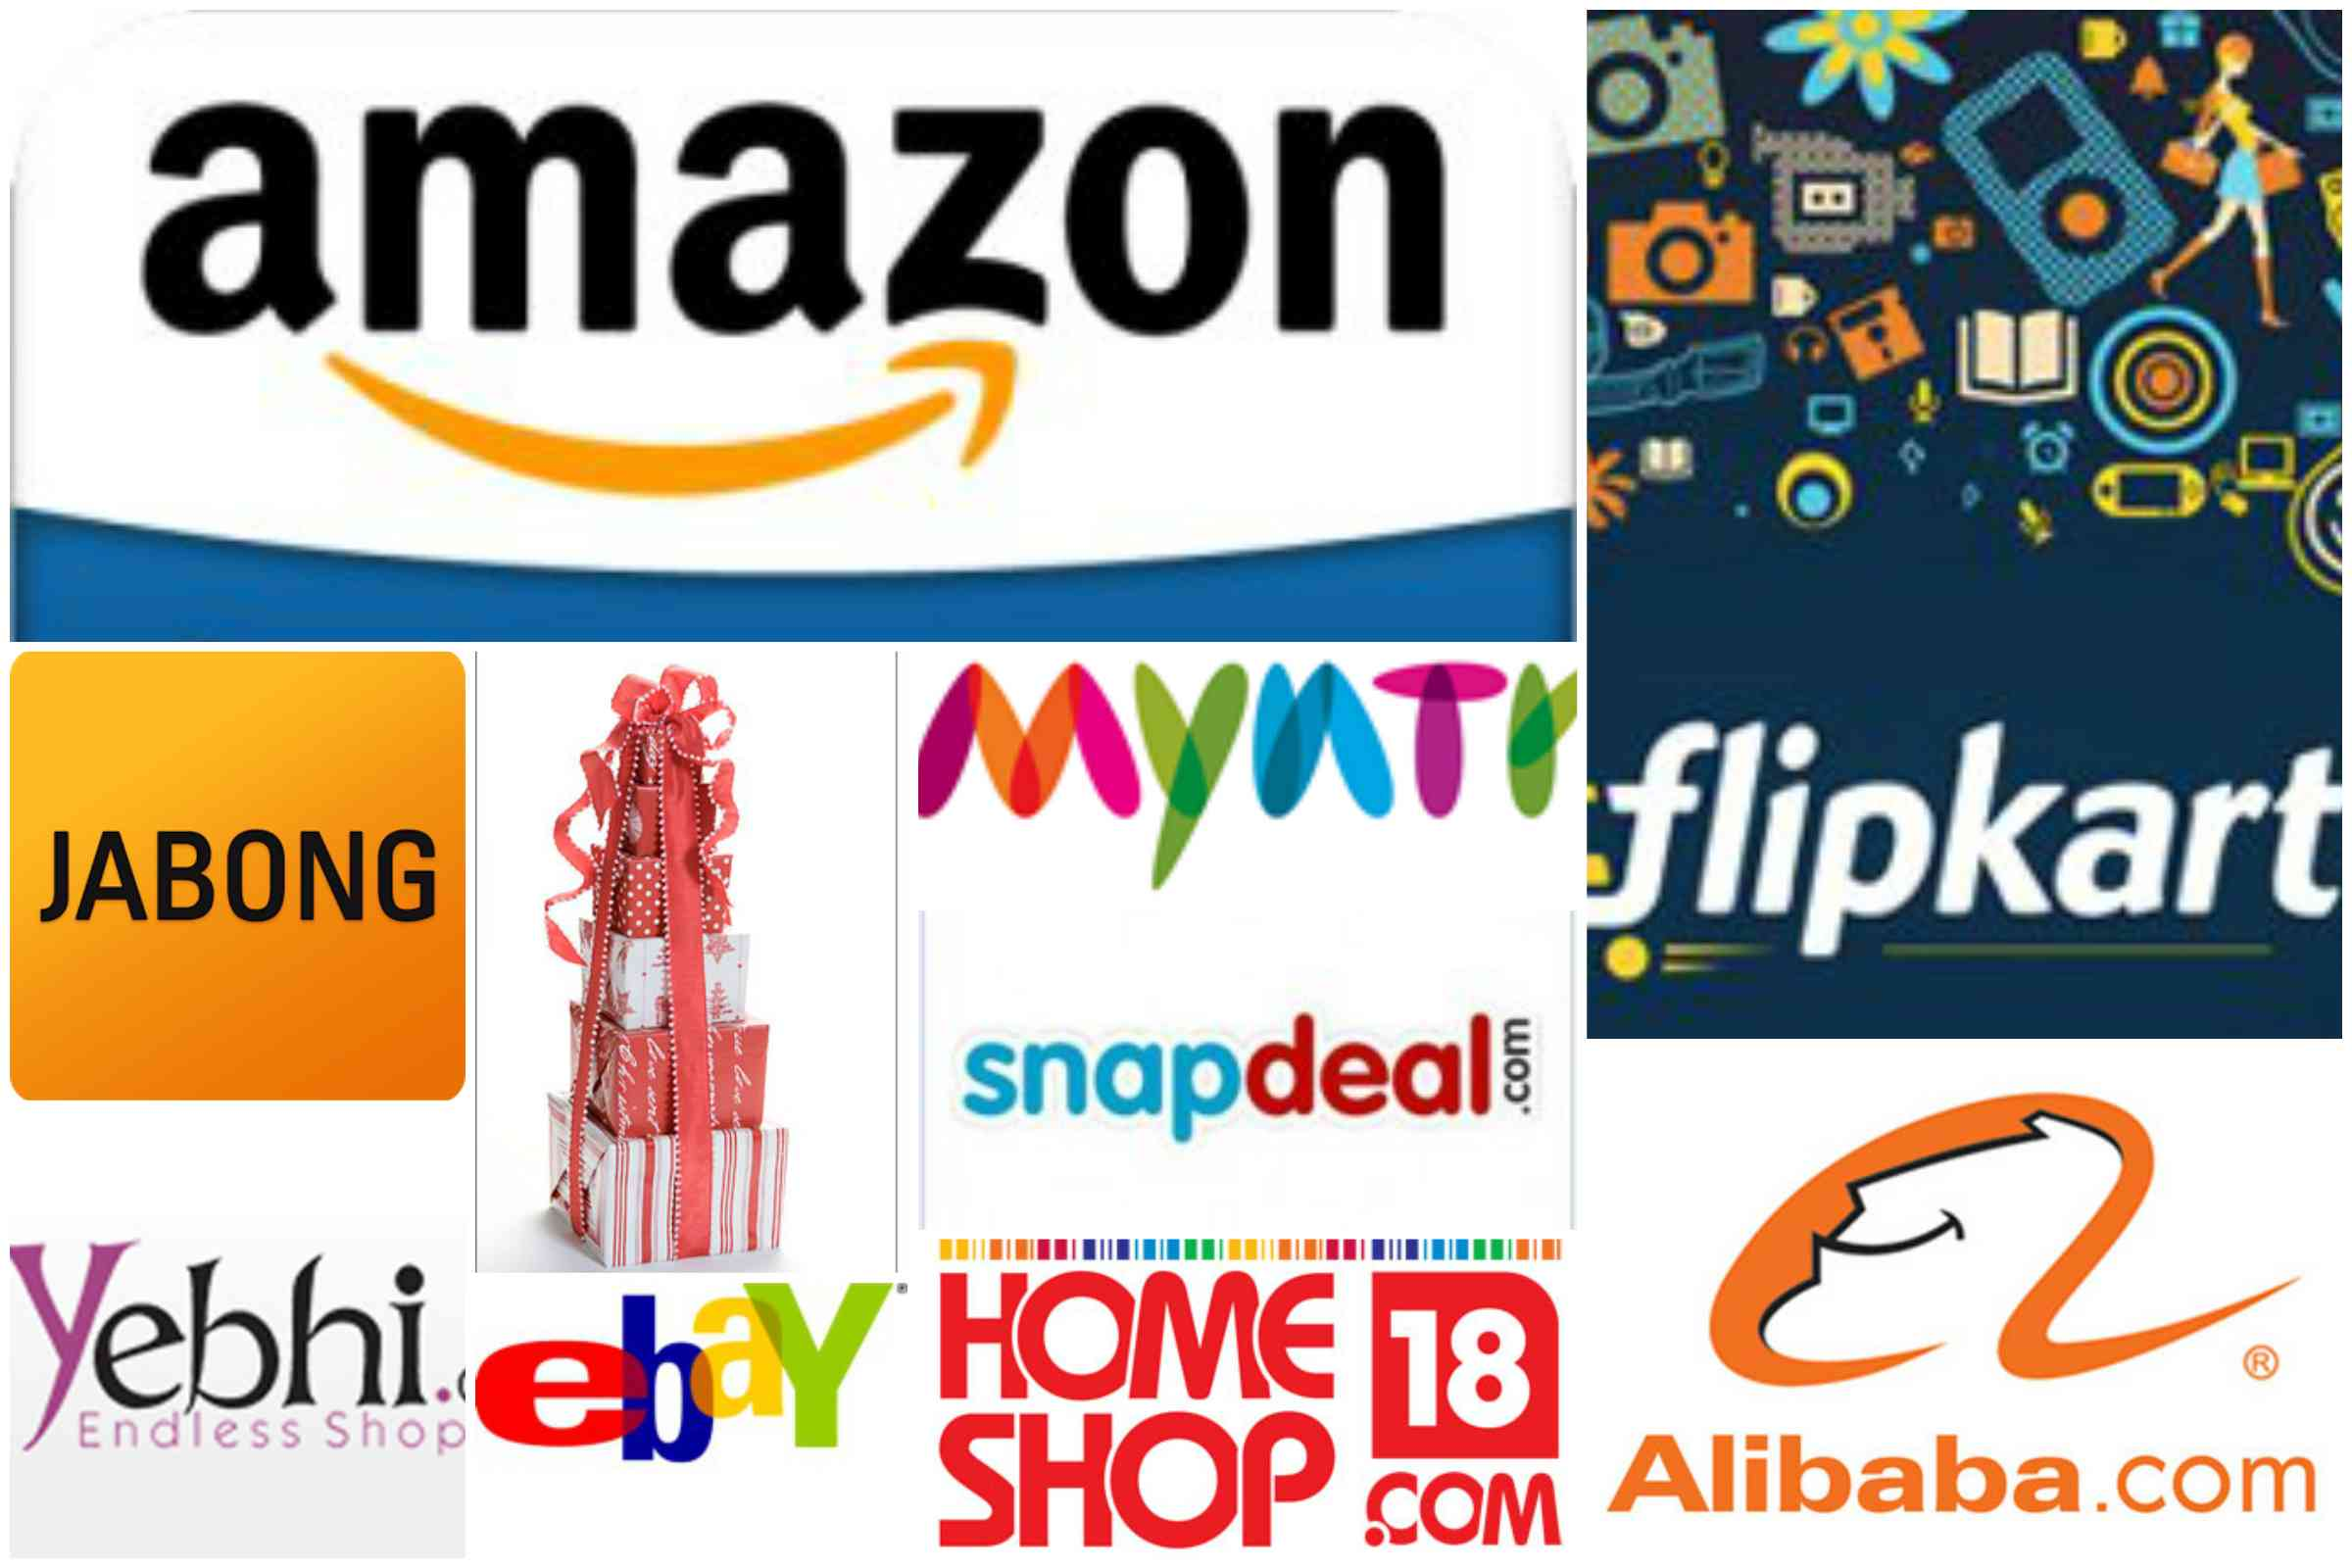 Best online shopping sites list